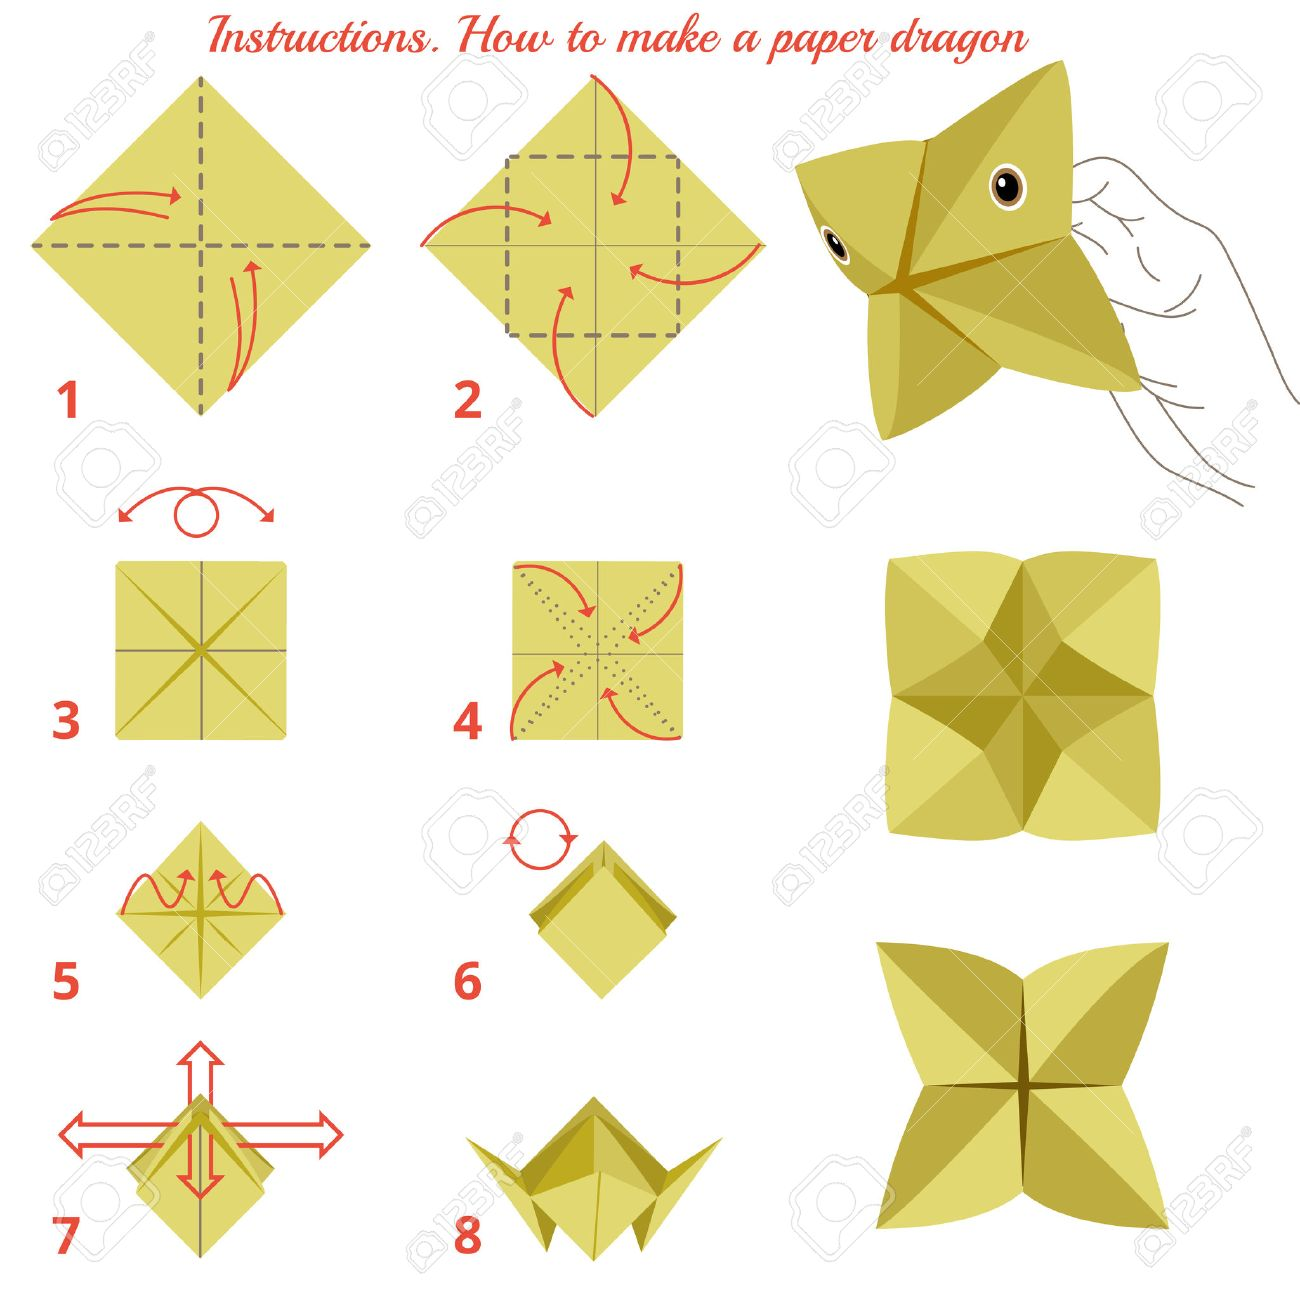 Instructions how to make paper dragon  Animal tutorial step by